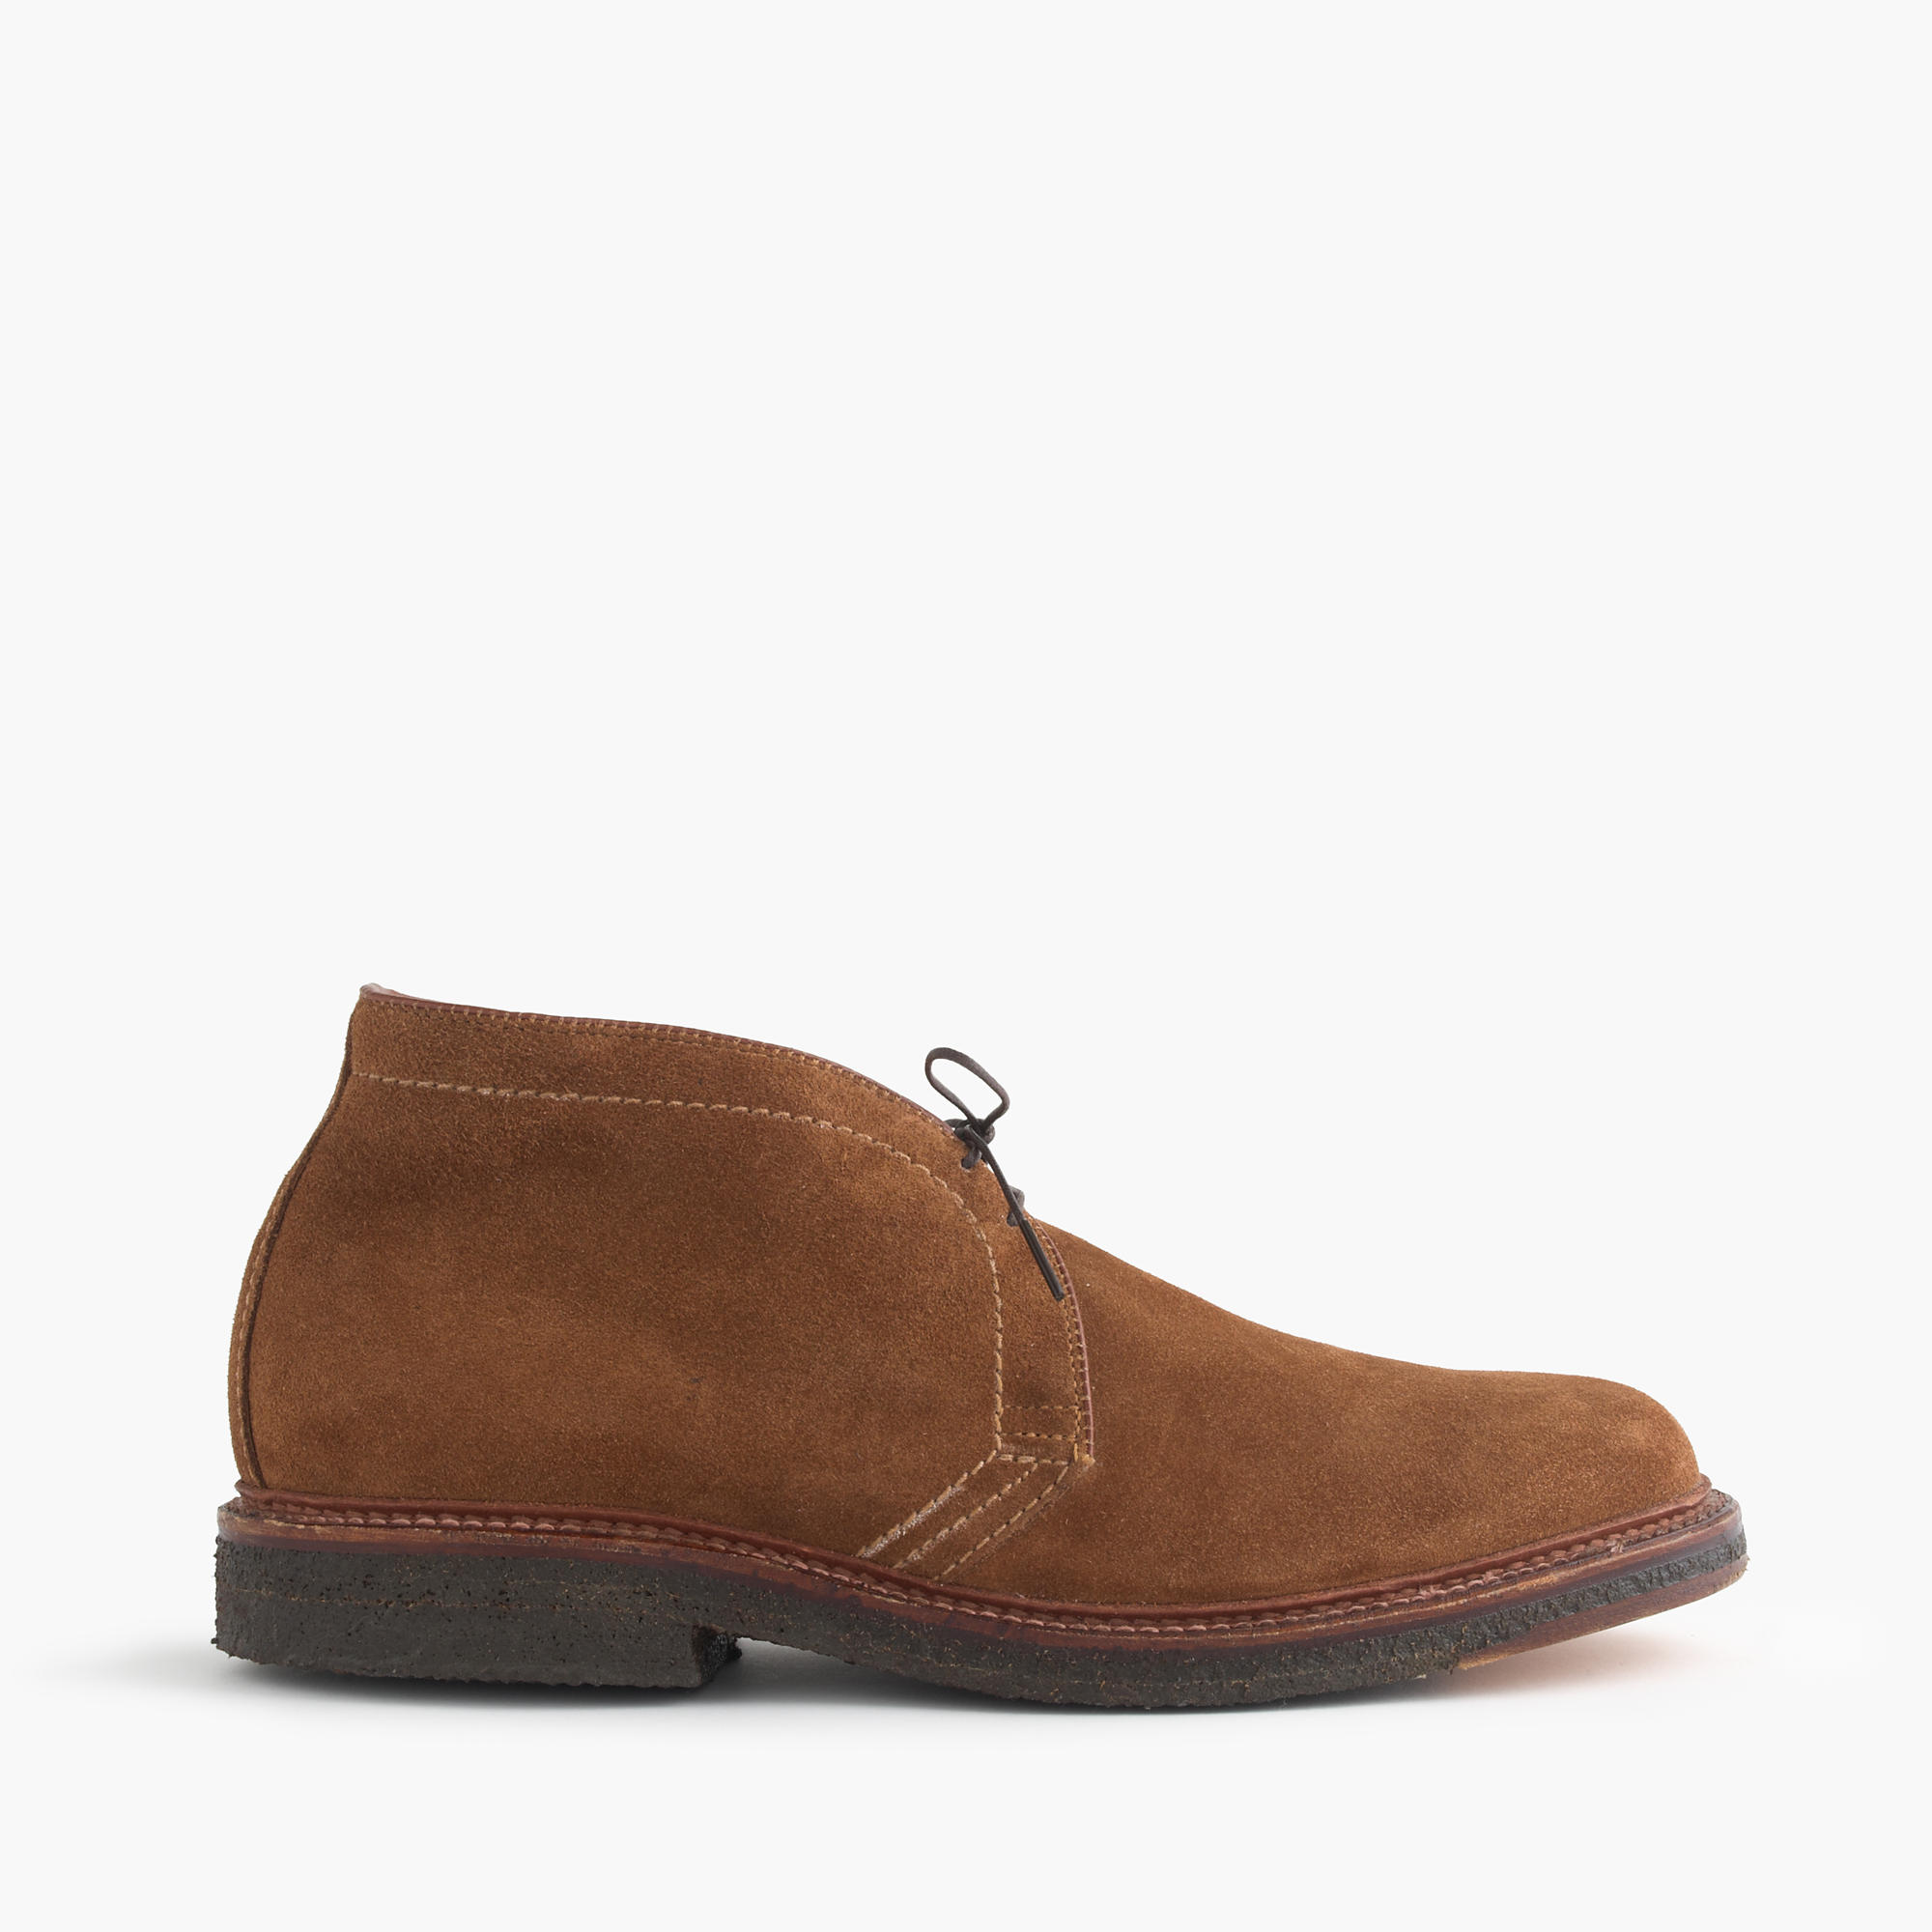 Alden for j crew flex toe chukkas in suede men 39 s boots for The alden